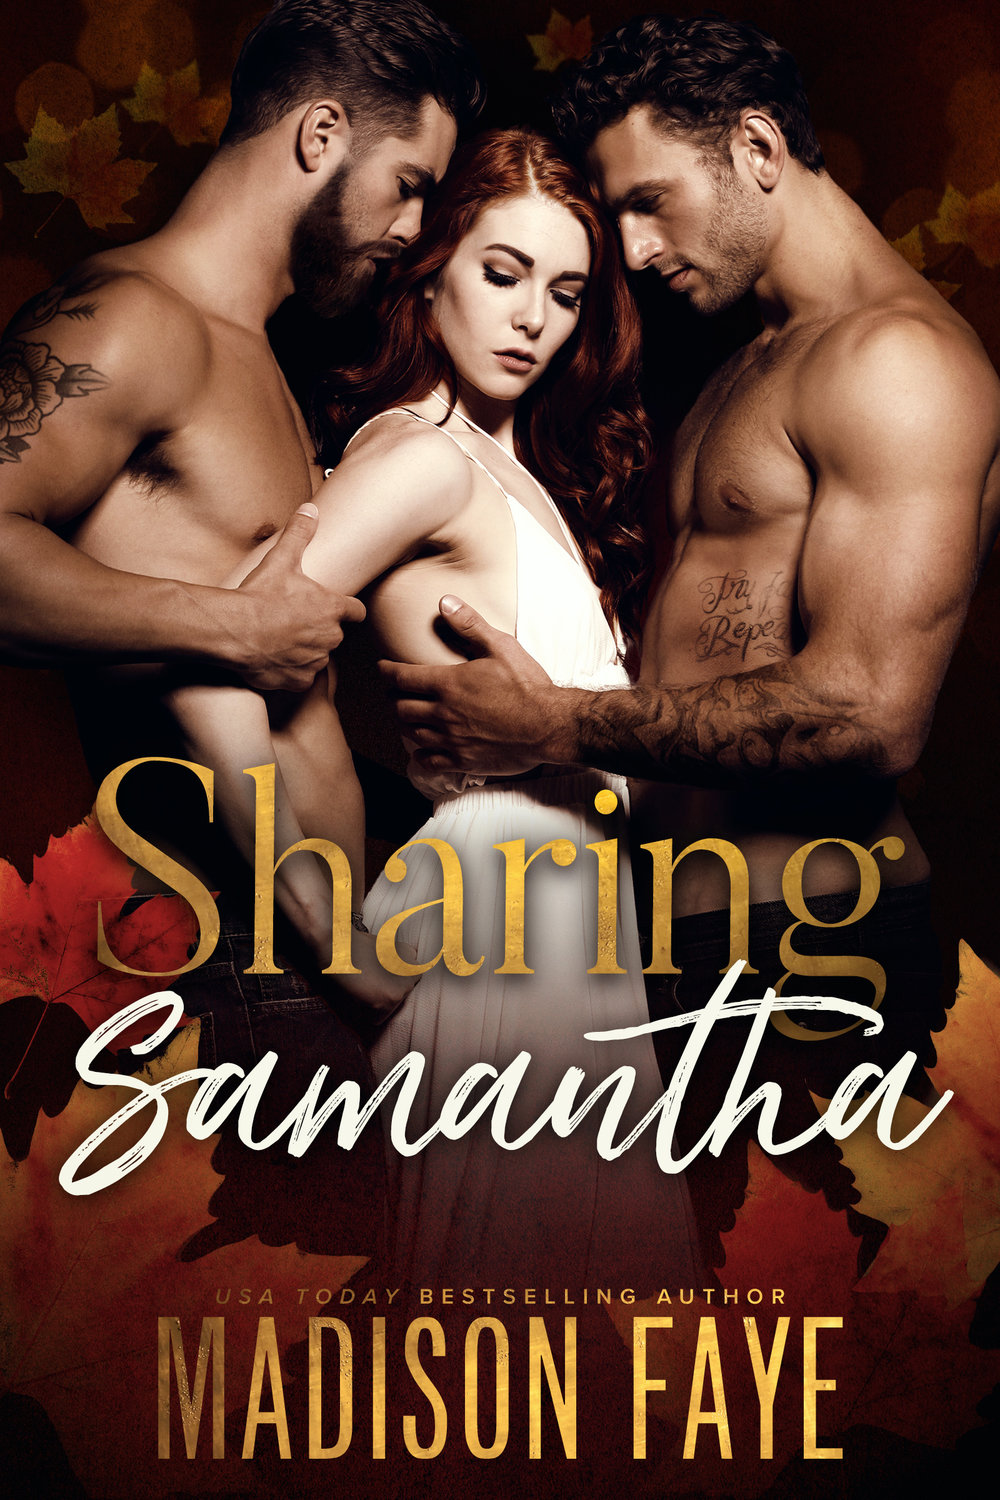 SharingSamantha_Ebook.jpg